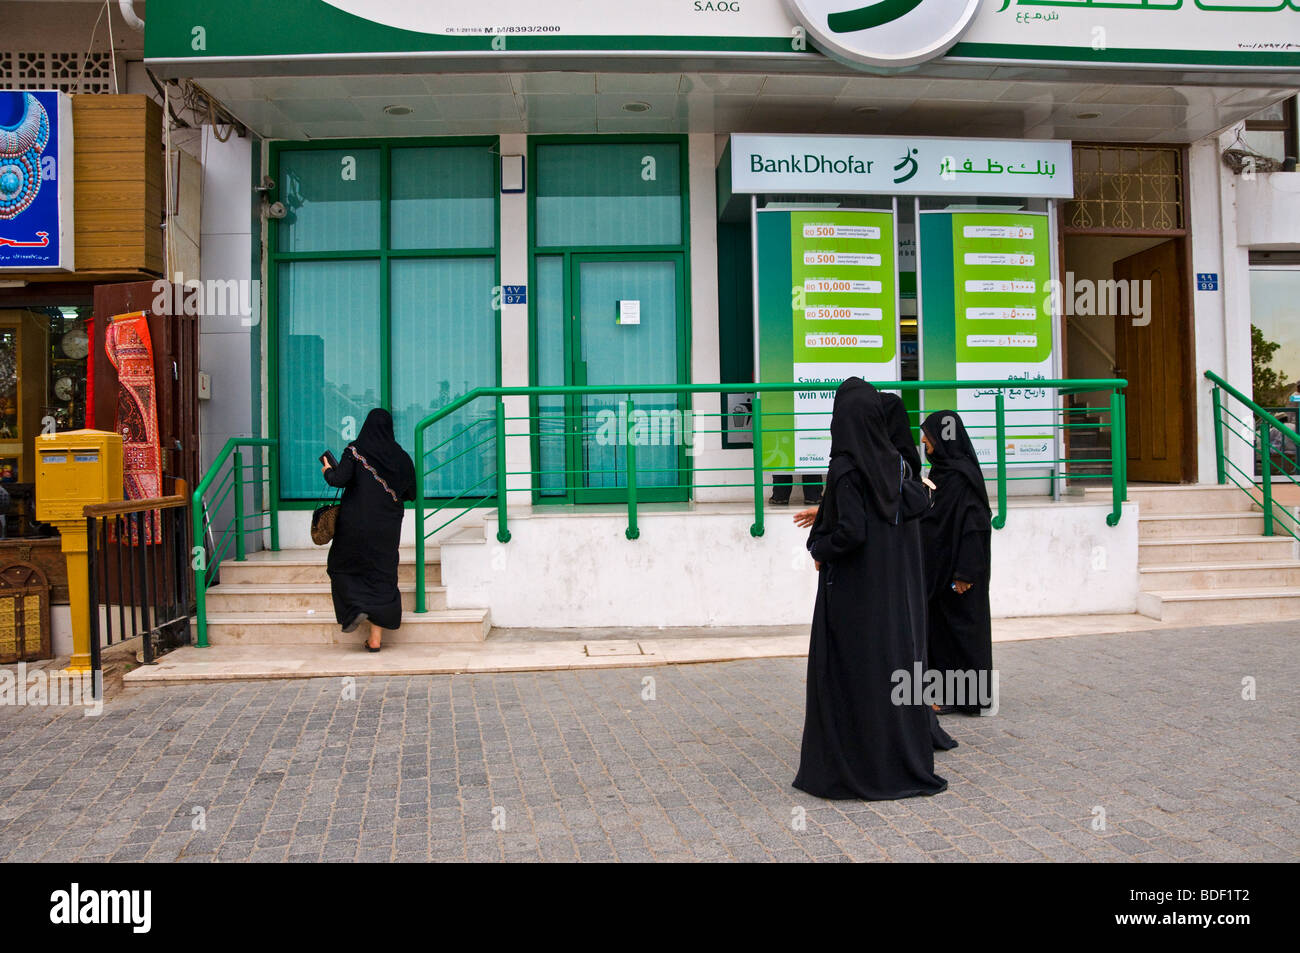 Muslim women banking Muscat Sultanate Of Oman - Stock Image